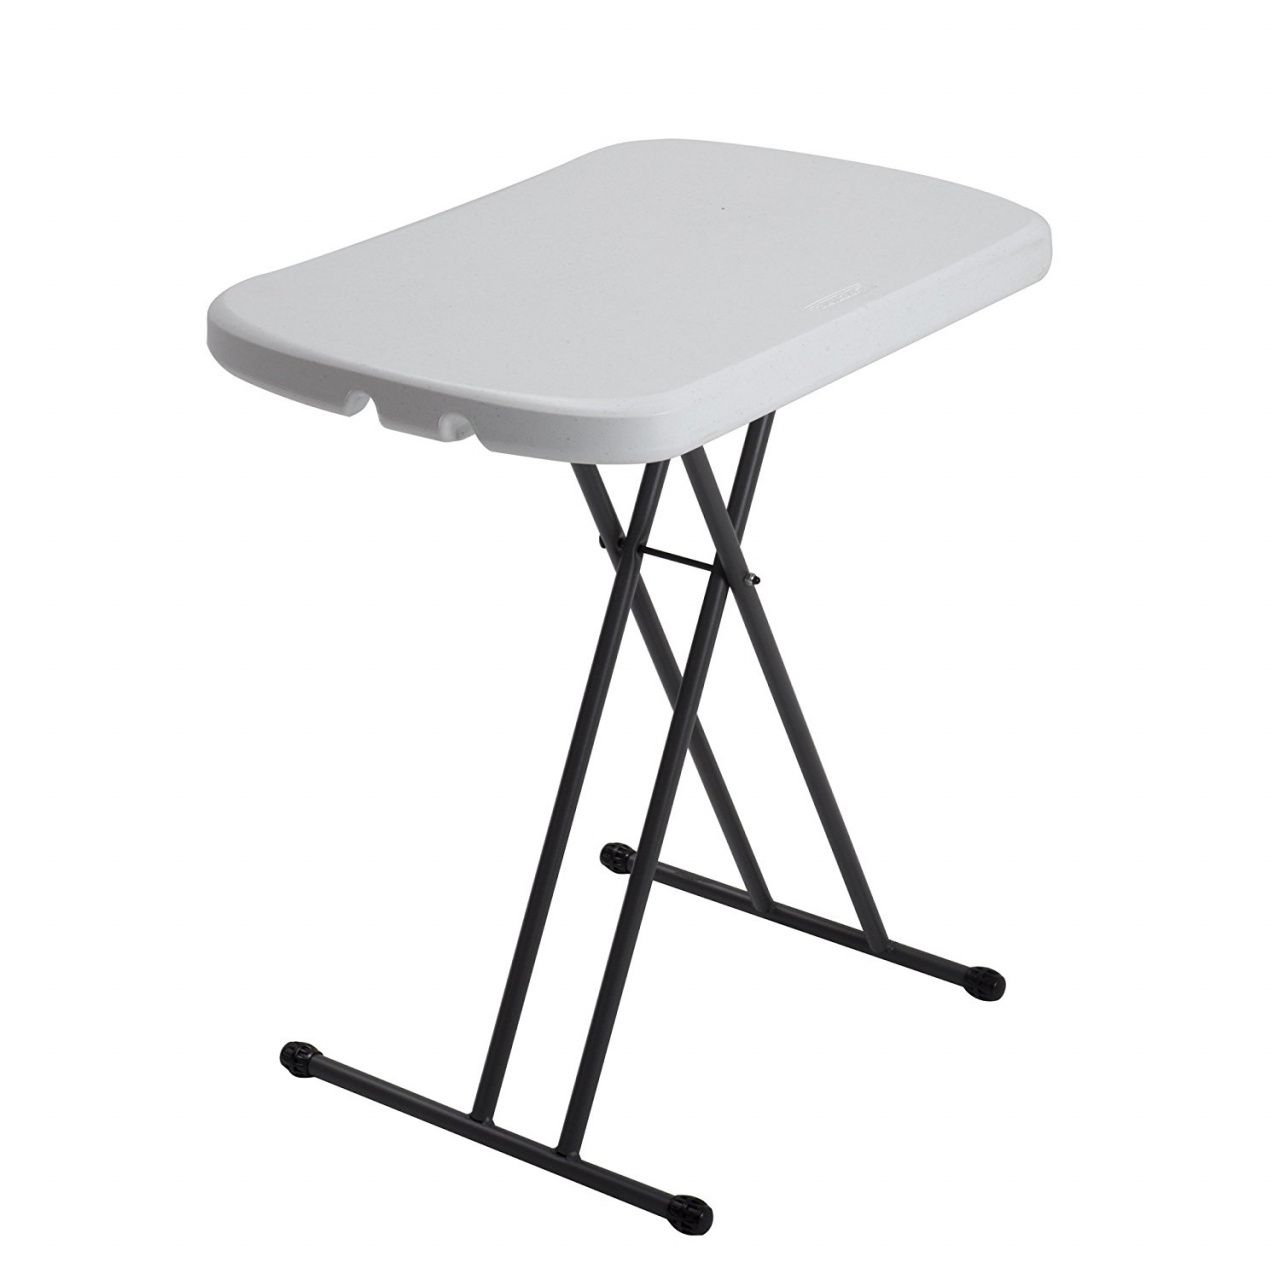 Office folding tables folding tables small  home office furniture collections check more